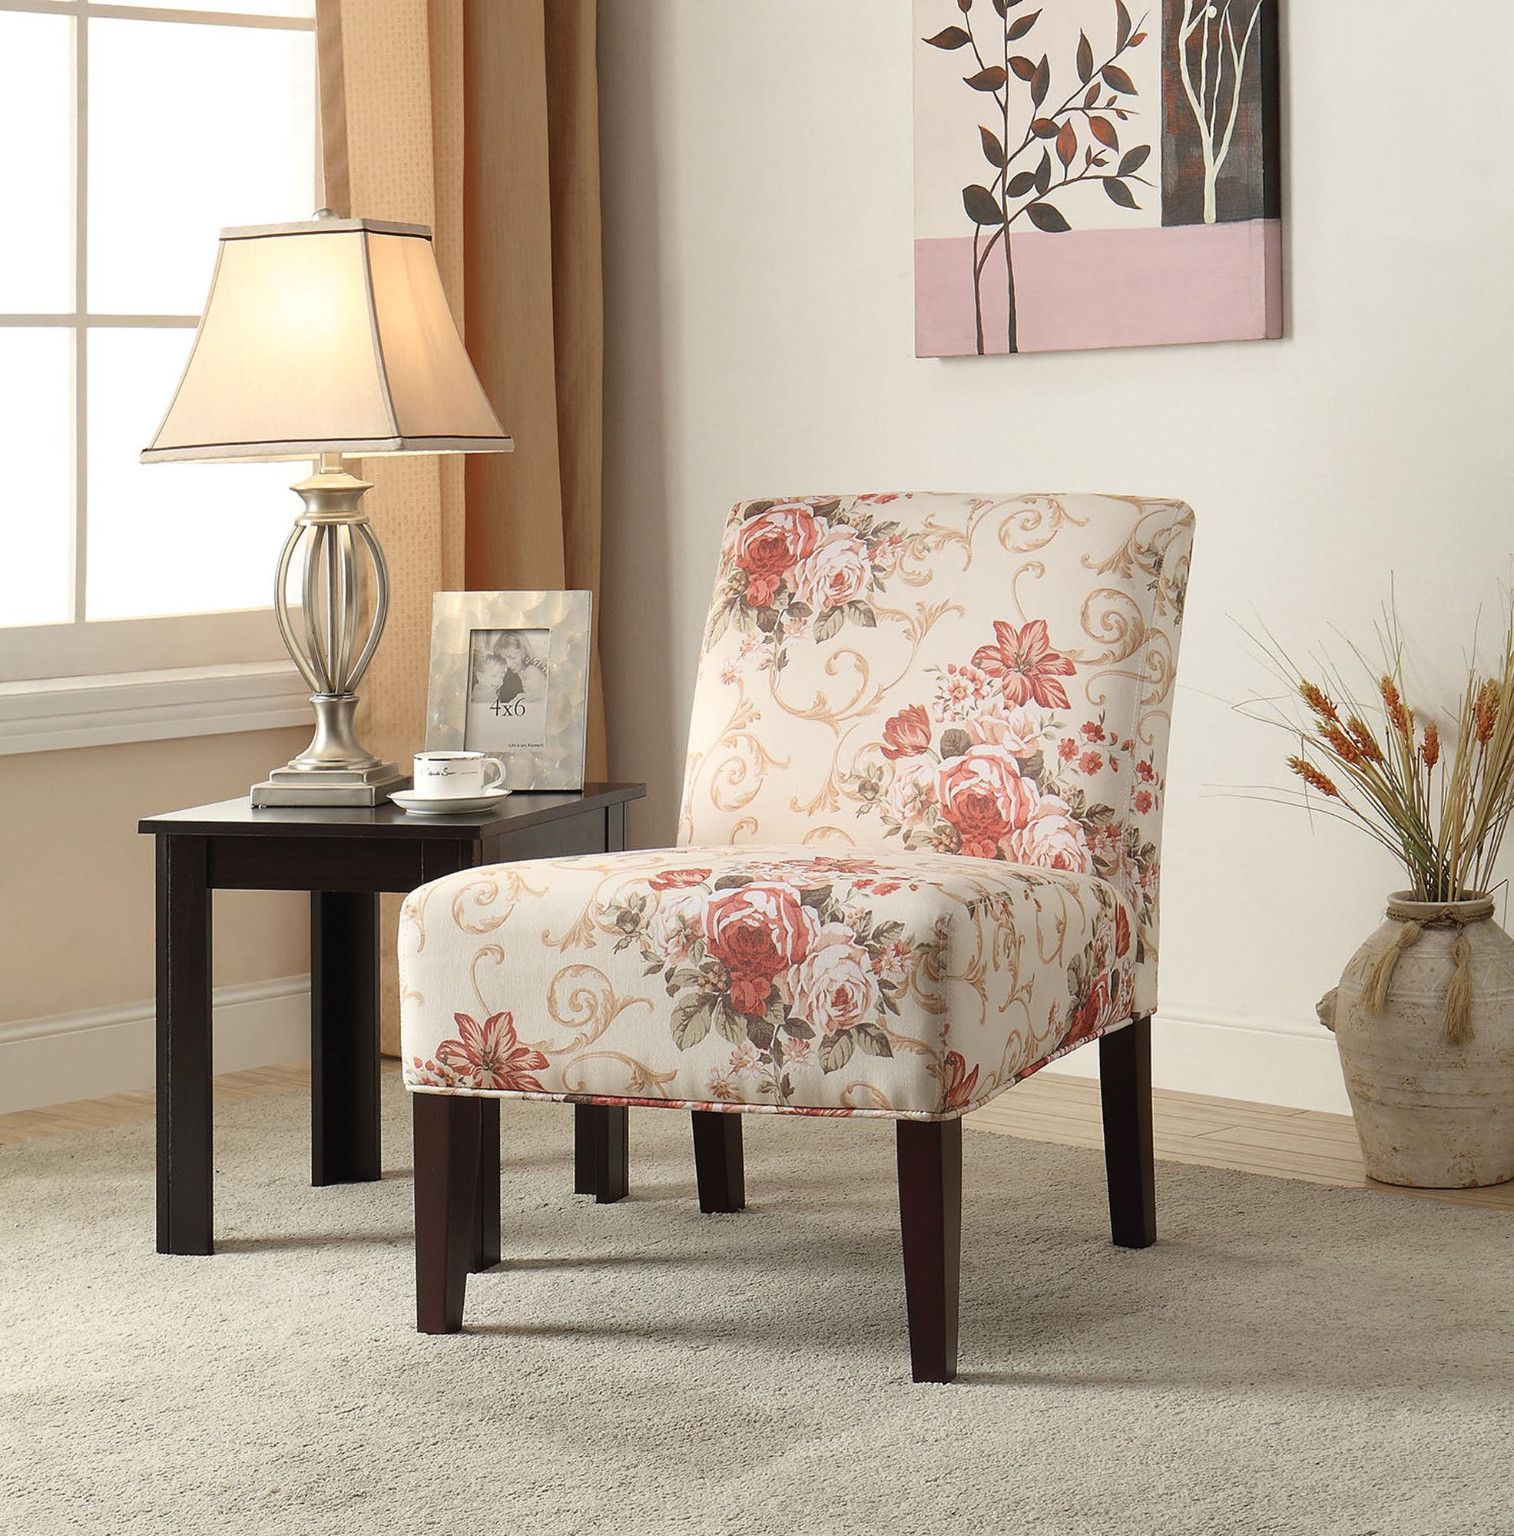 Floral Pastel Red Accent Chair 199 00 30 W X 22 D X 33 H Ctc